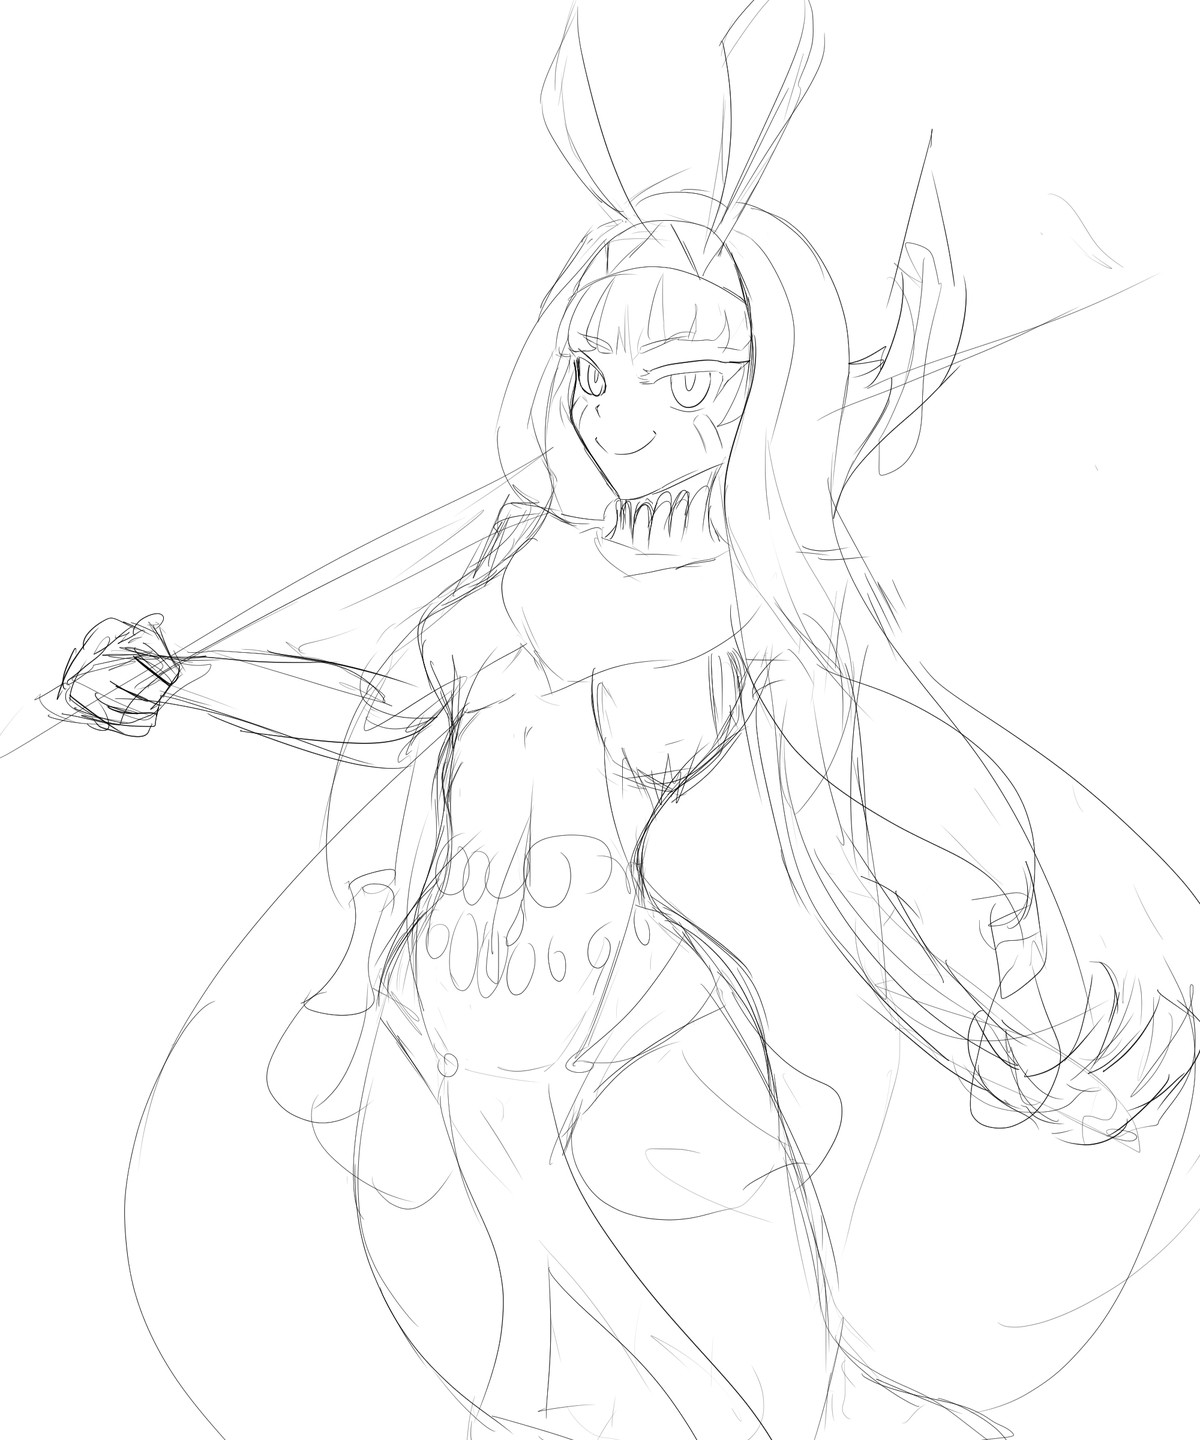 Nitocris sketch + lucky bastard roll. AYY LMAO 120 QUARTZ join list: GBArt (99 subs)Mention History.. 90 Quartz niBBa step your gacha luck up